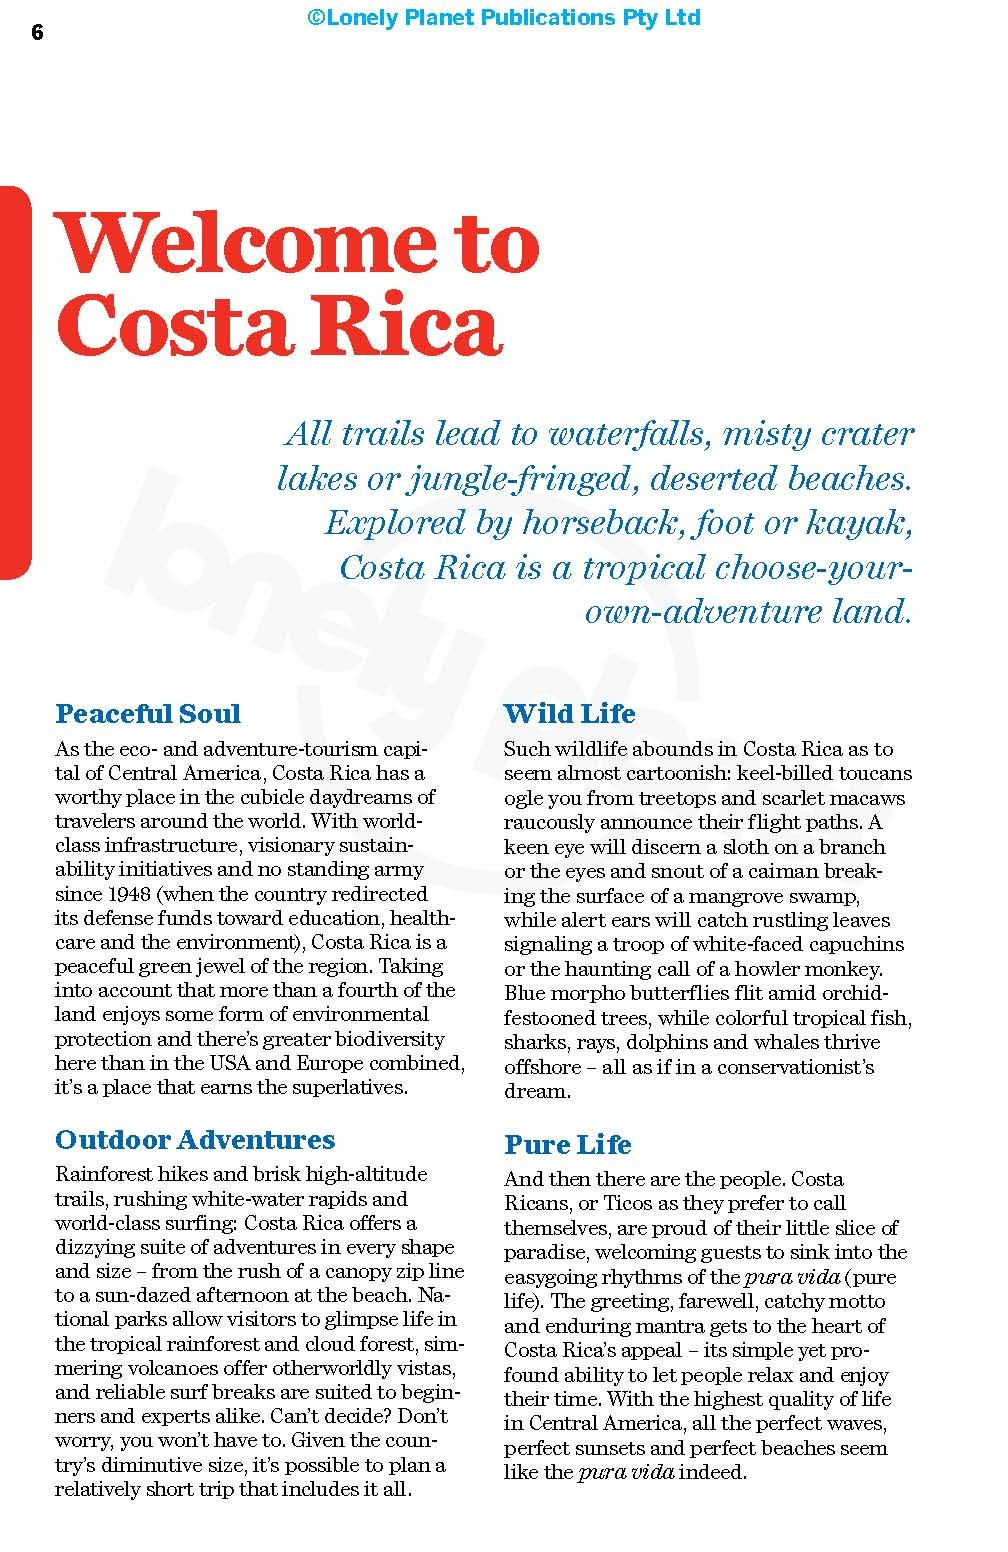 Lonely Planet Costa Rica (Travel Guide): Lonely Planet, Mara Vorhees, Anna  Kaminski: 9781786571120: Amazon.com: Books